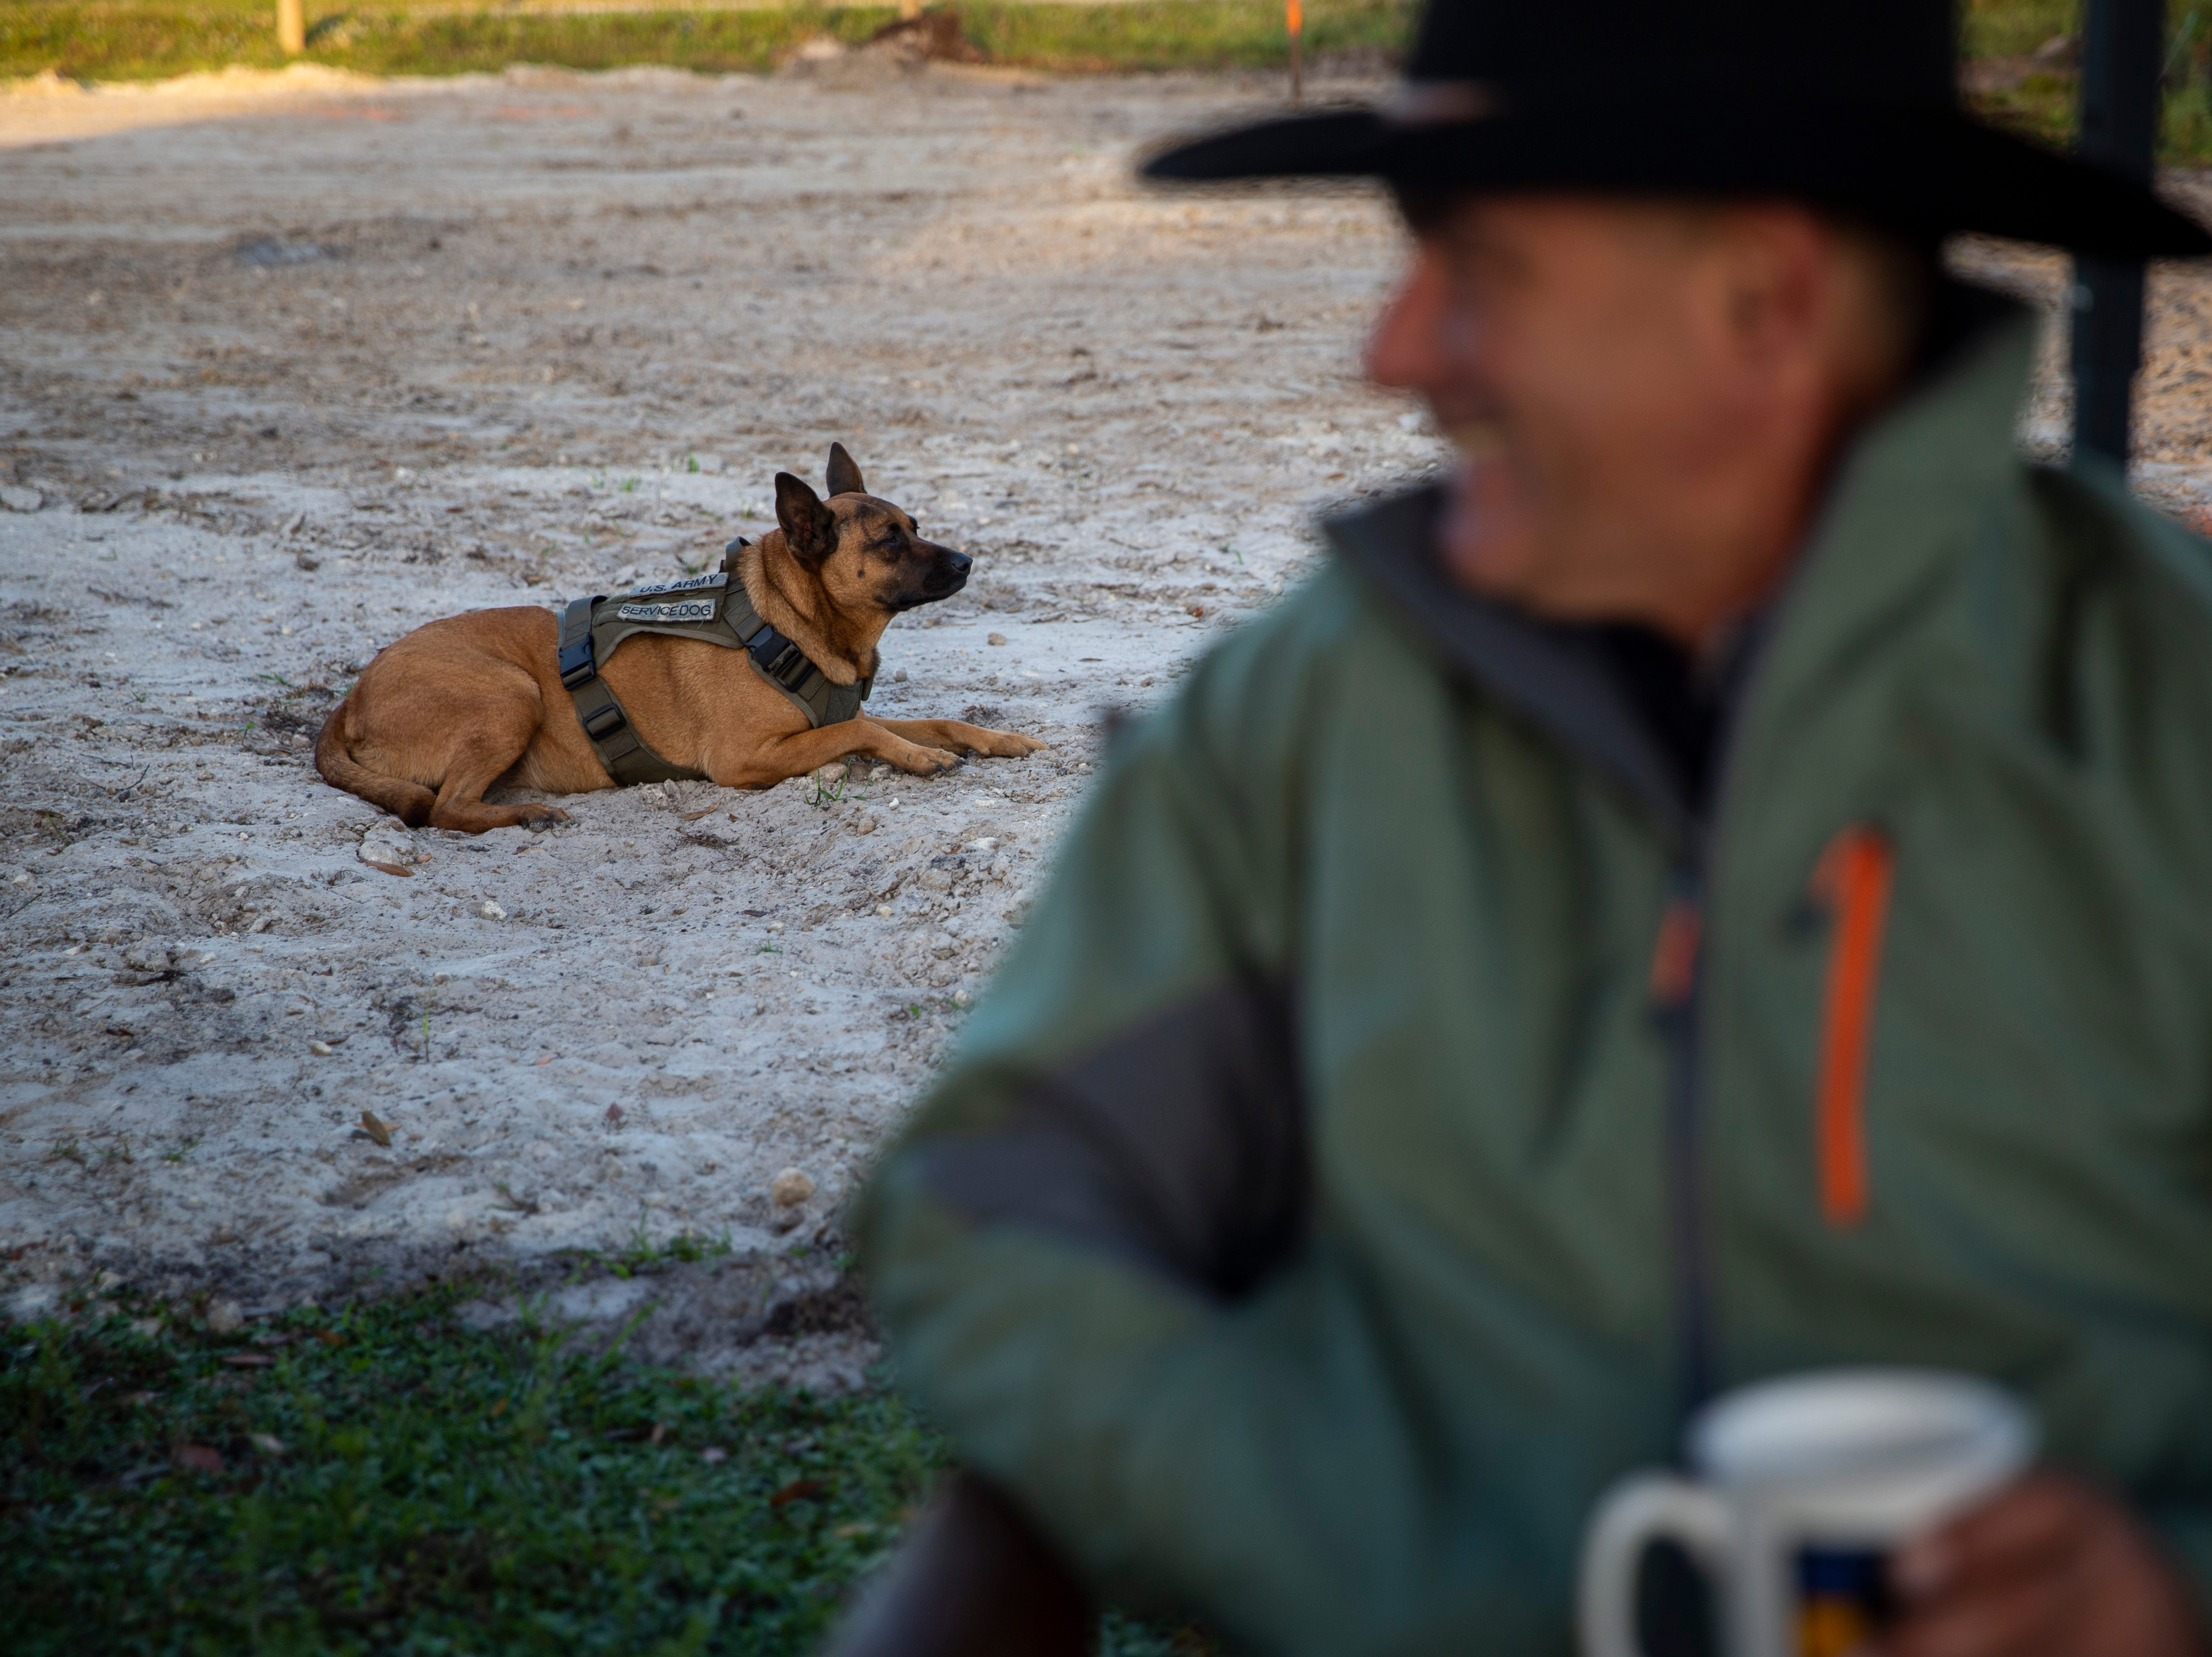 Steven DePalma drinks his morning coffee while his service dog, Mia, lies close by in the dirt where DePalma plans to build a barn on Friday, December 7, 2018, at his ranch in Fort Myers.